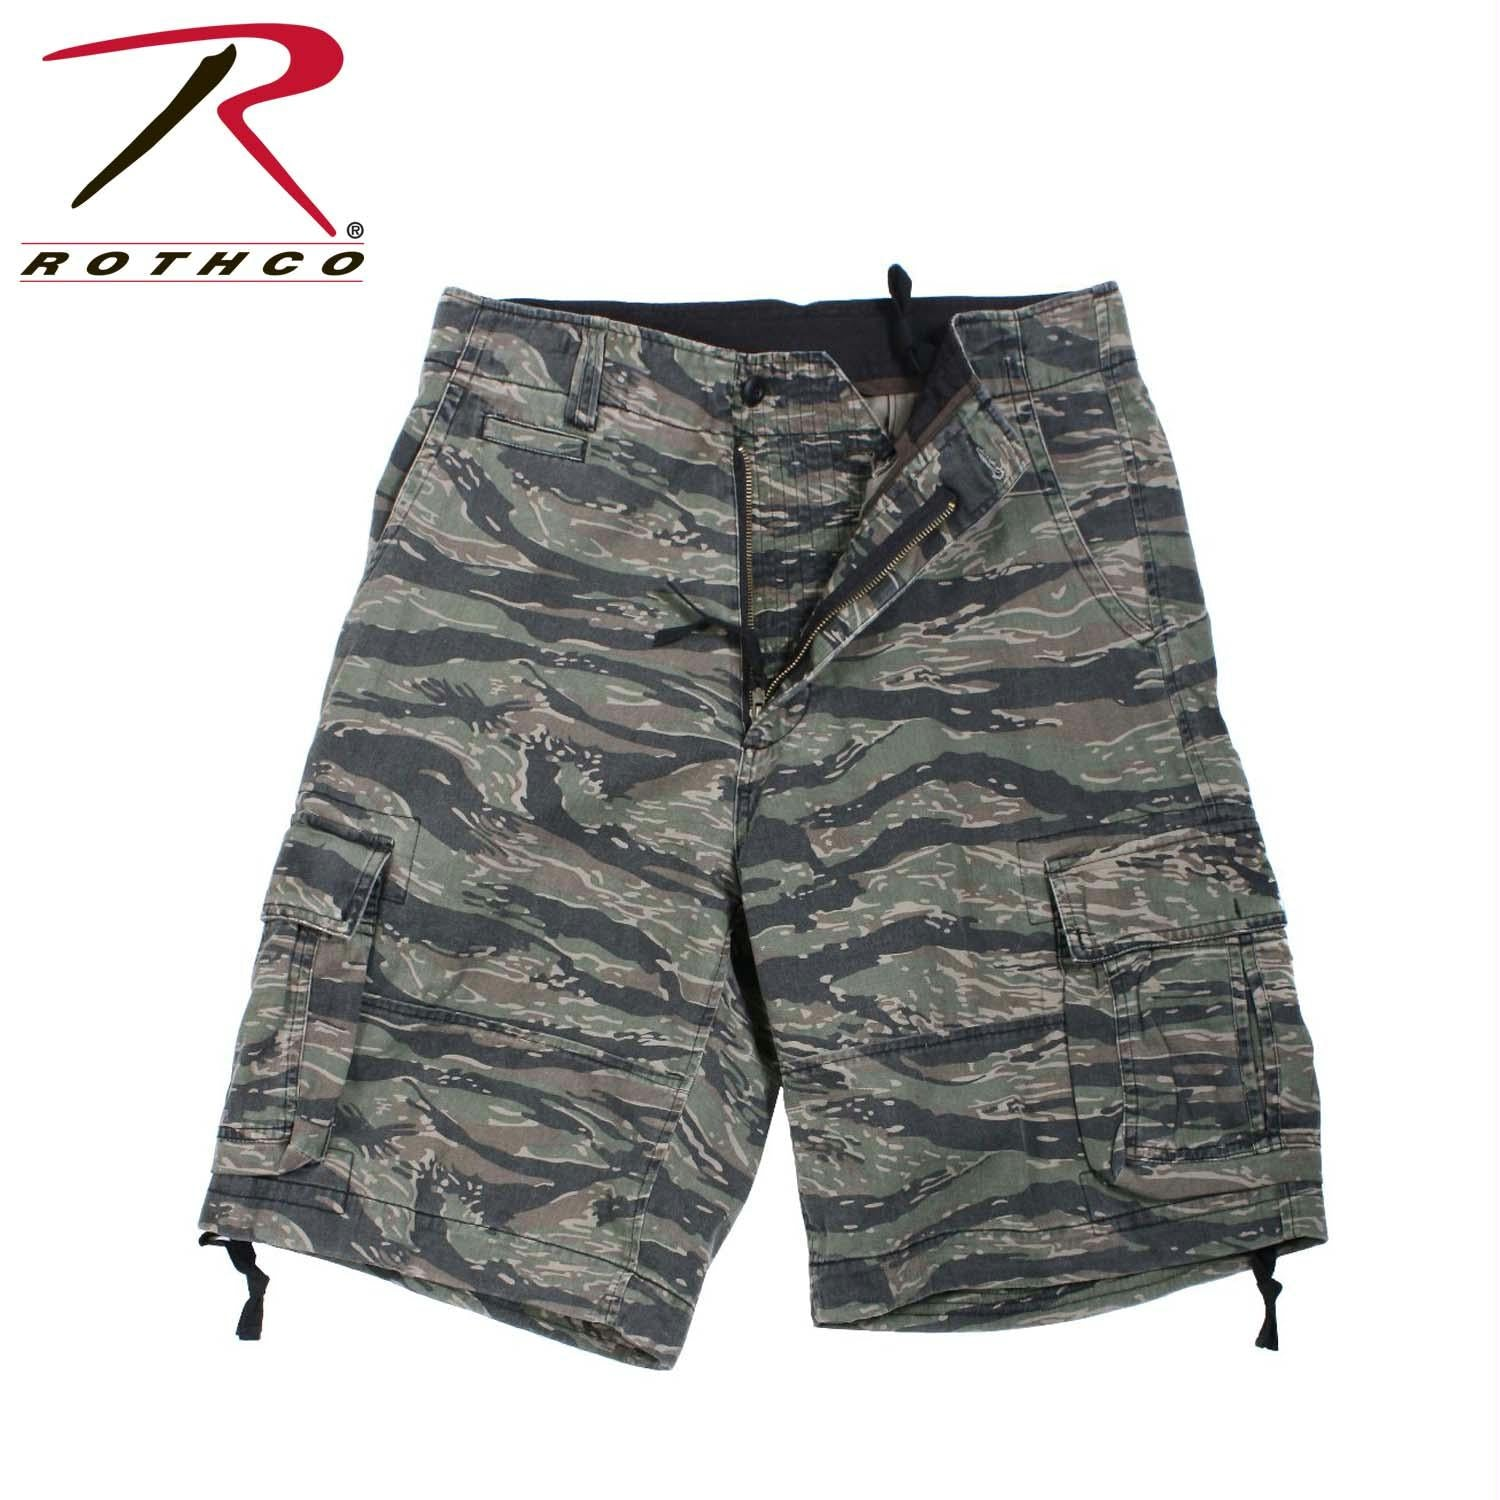 Rothco Vintage Camo Infantry Utility Shorts - Tiger Stripe Camo / XS